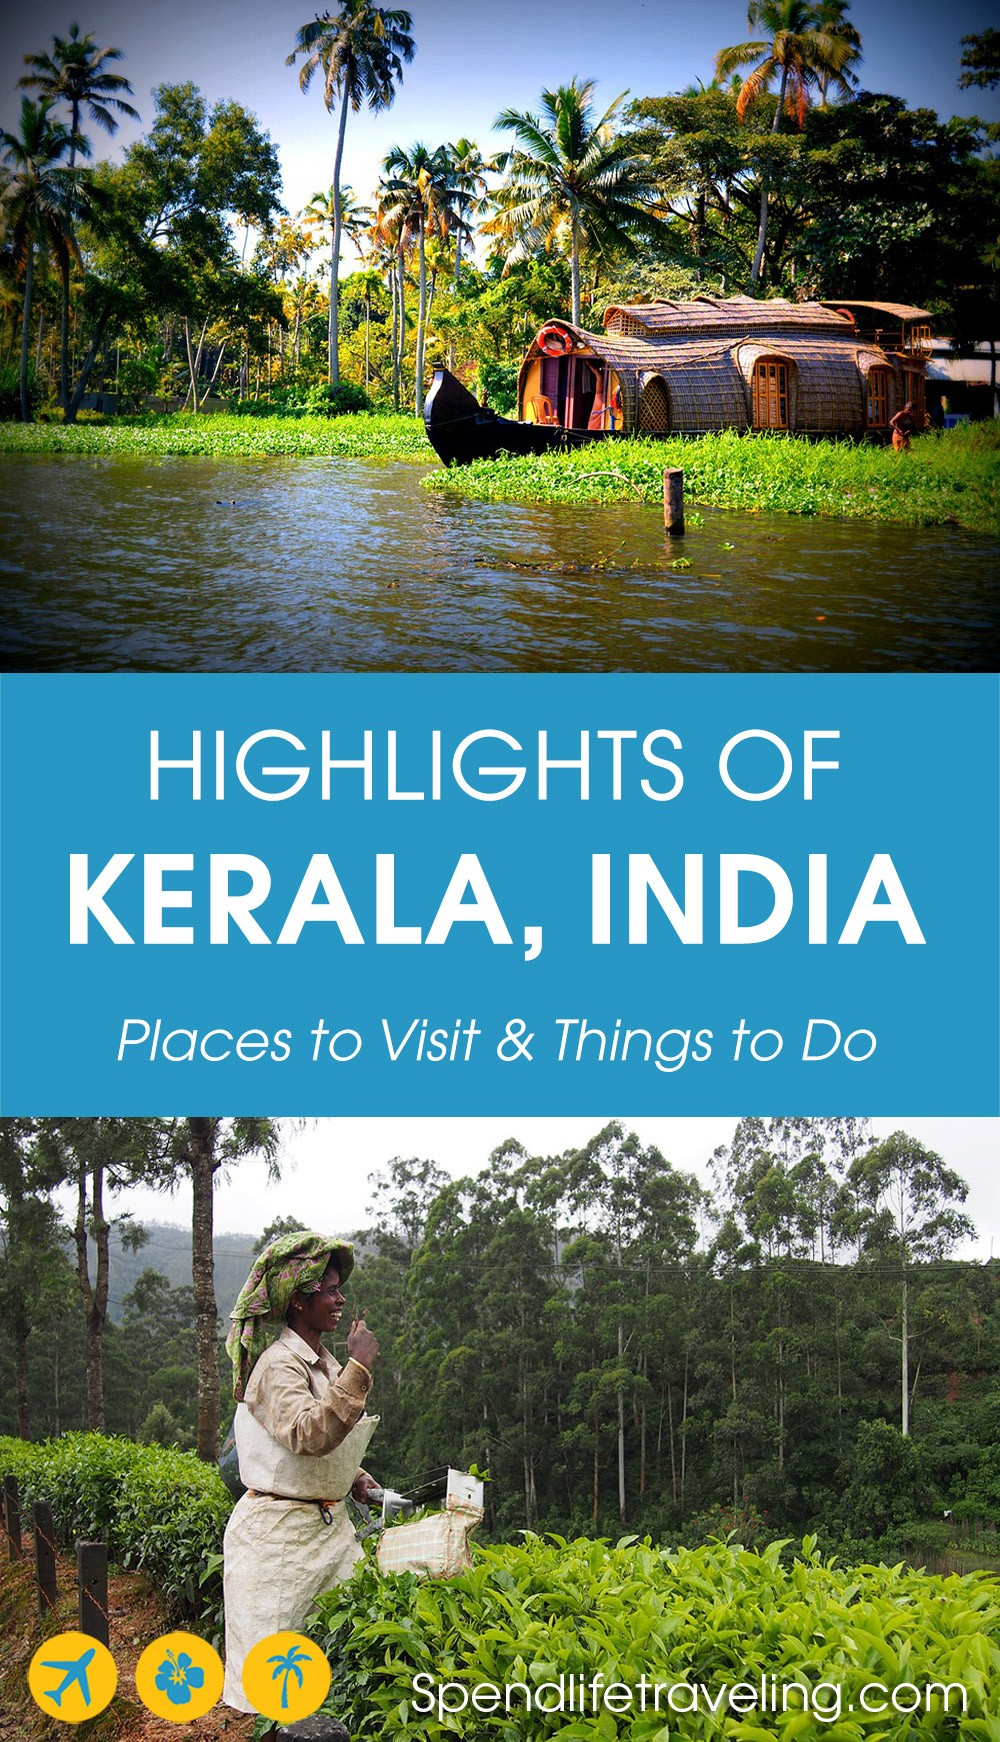 Where to go and what to do when visiting #Kerala? These are the things not to miss! #visitKerala #India #travelIndia